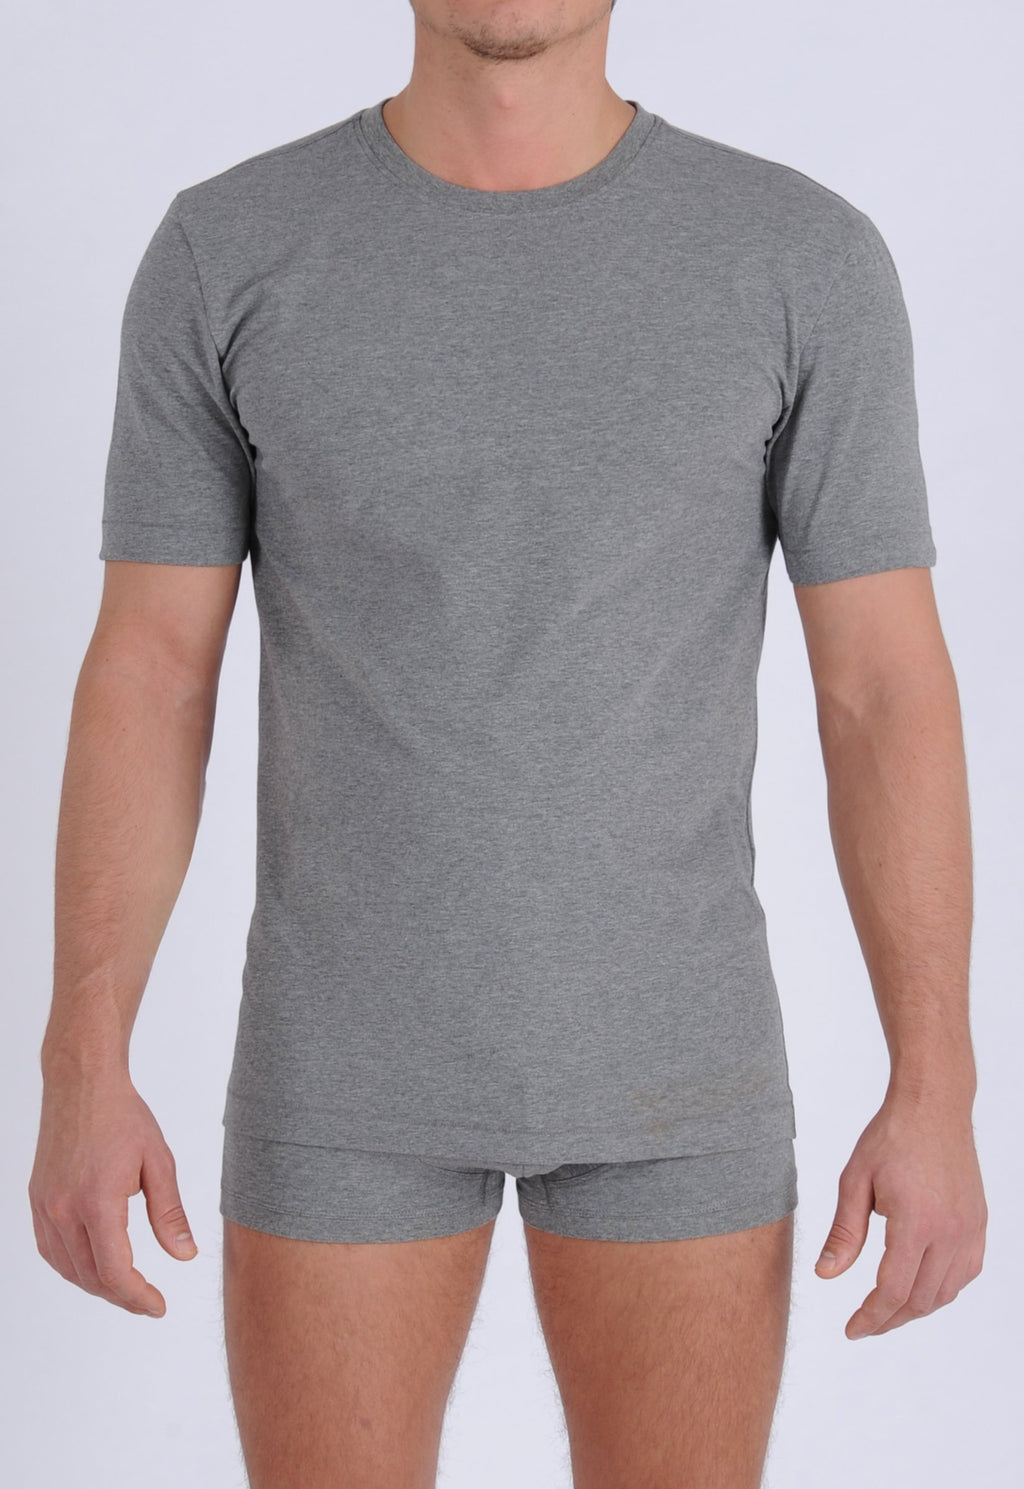 Ginch Gonch Signature Series - Crew Neck T-Shirt Grey Front